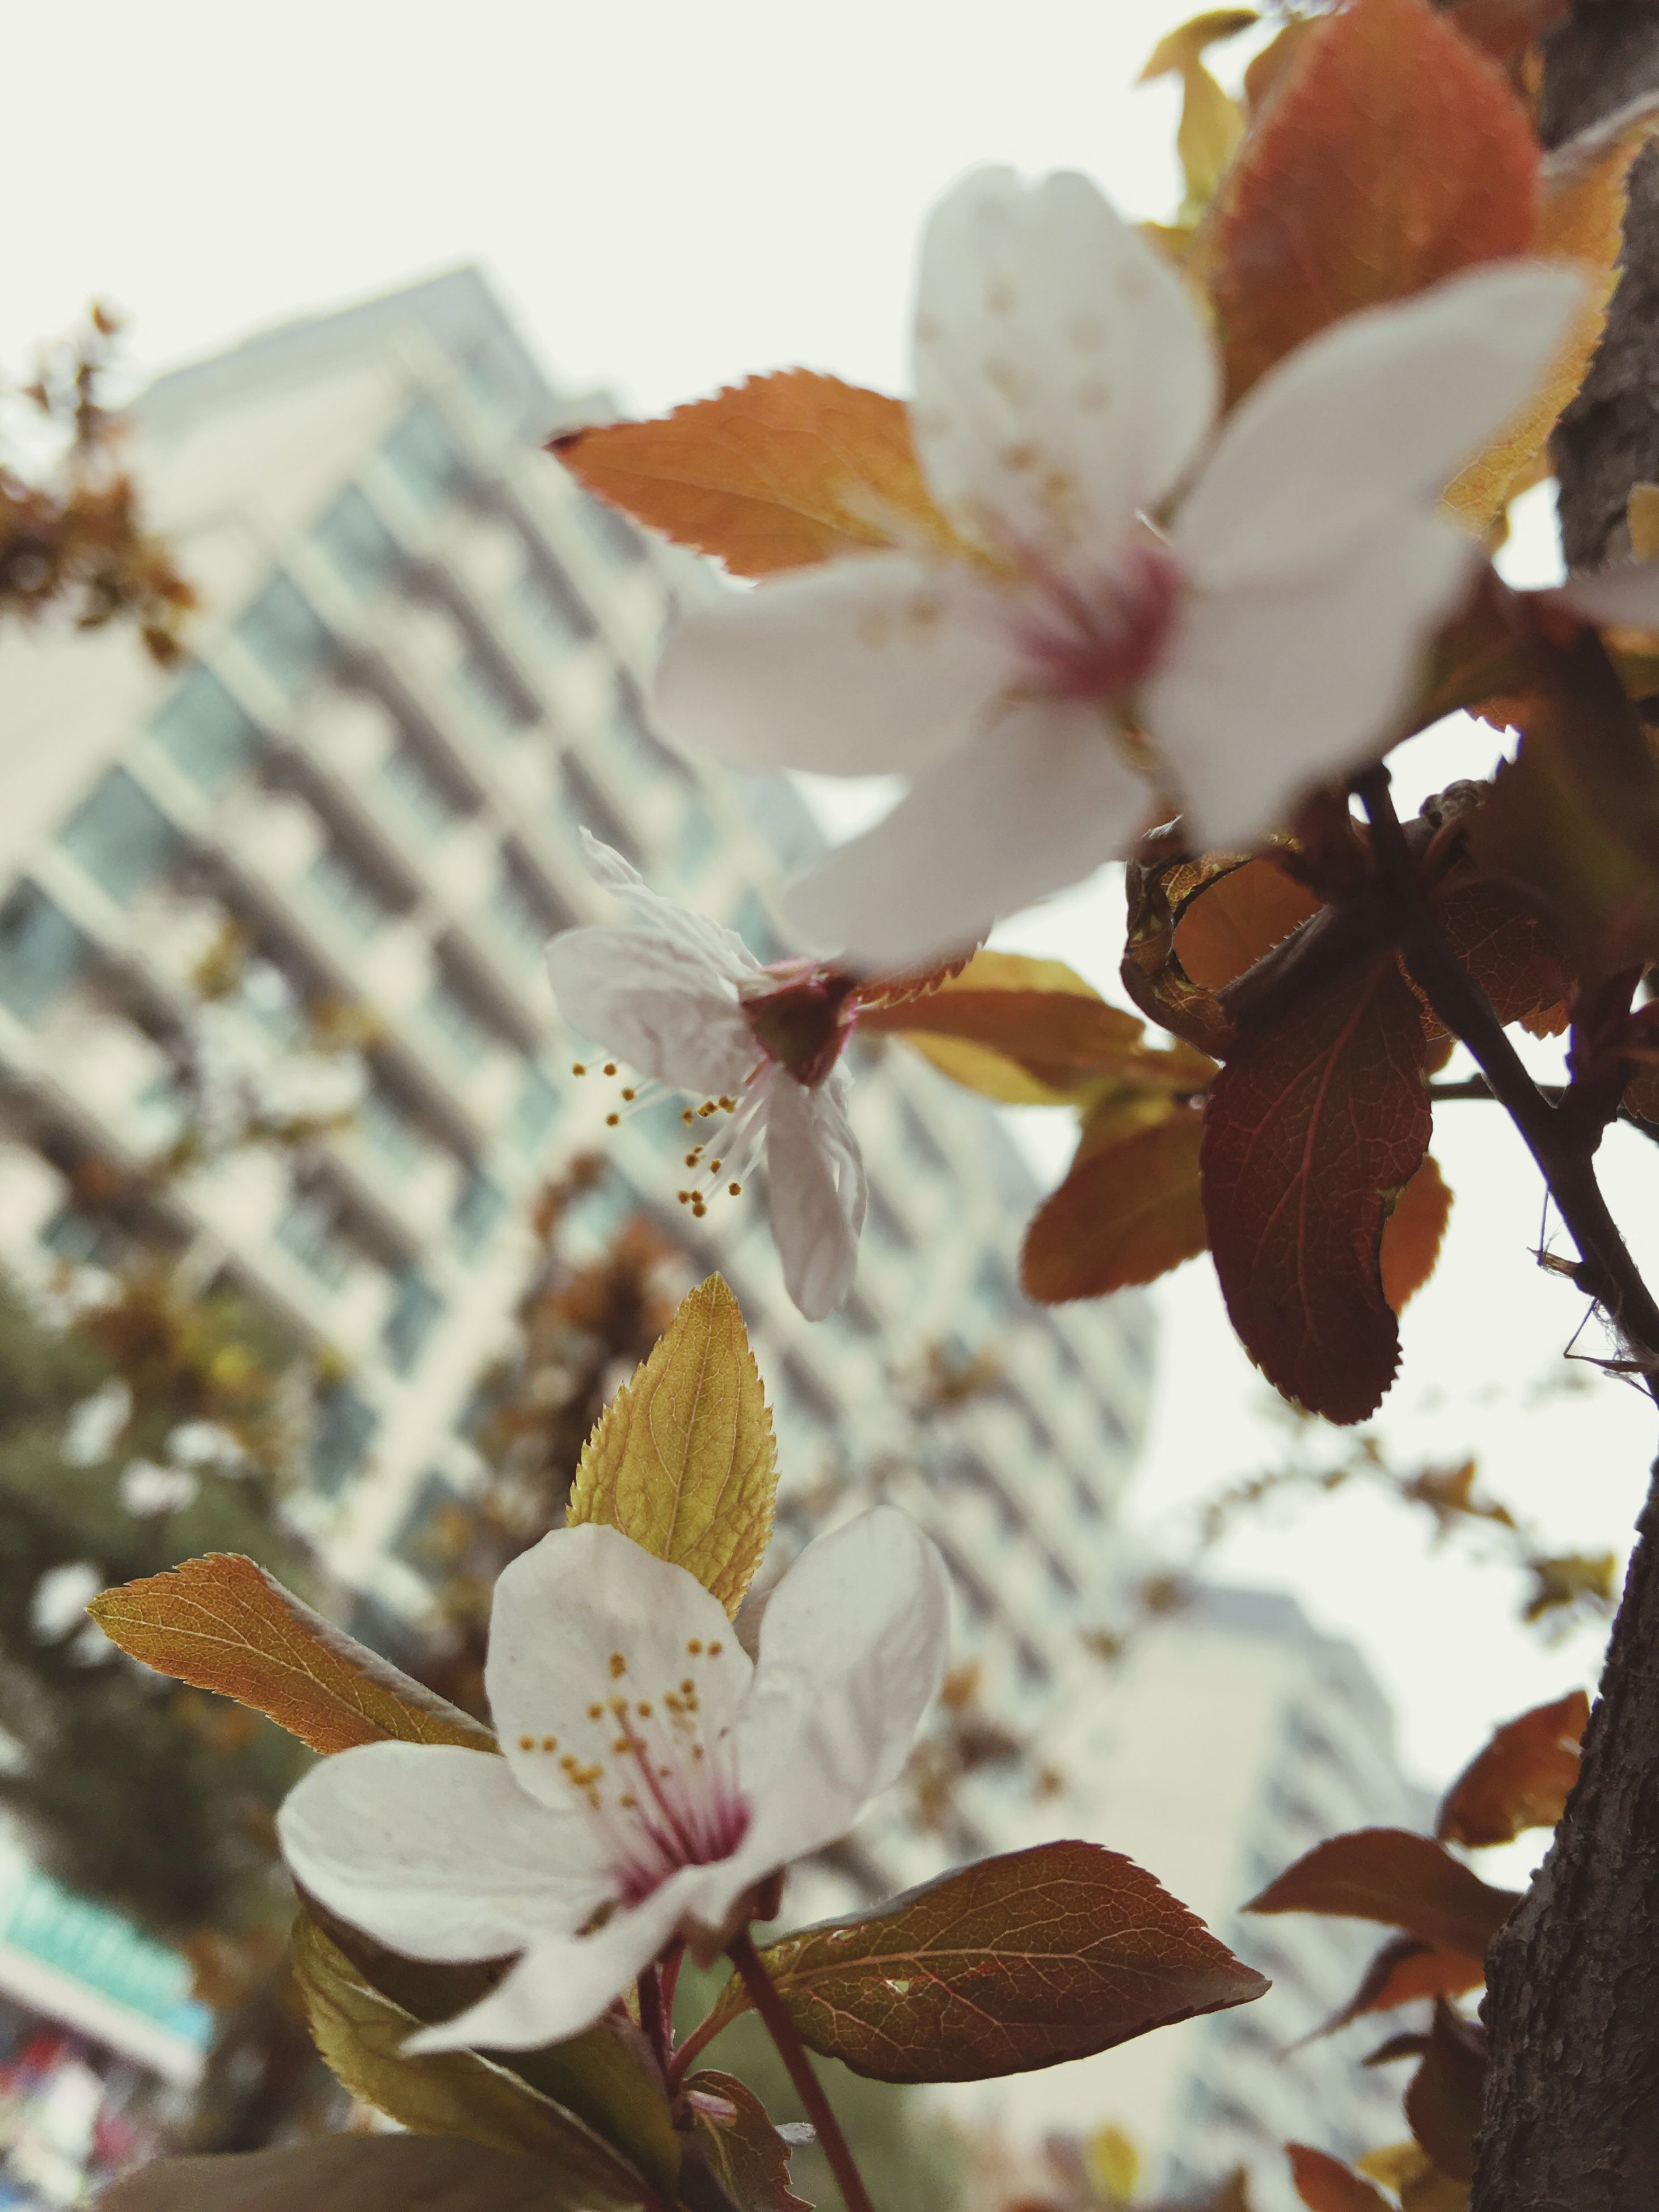 flower, freshness, fragility, petal, growth, flower head, beauty in nature, nature, blooming, in bloom, close-up, blossom, white color, focus on foreground, branch, stamen, low angle view, pollen, springtime, tree